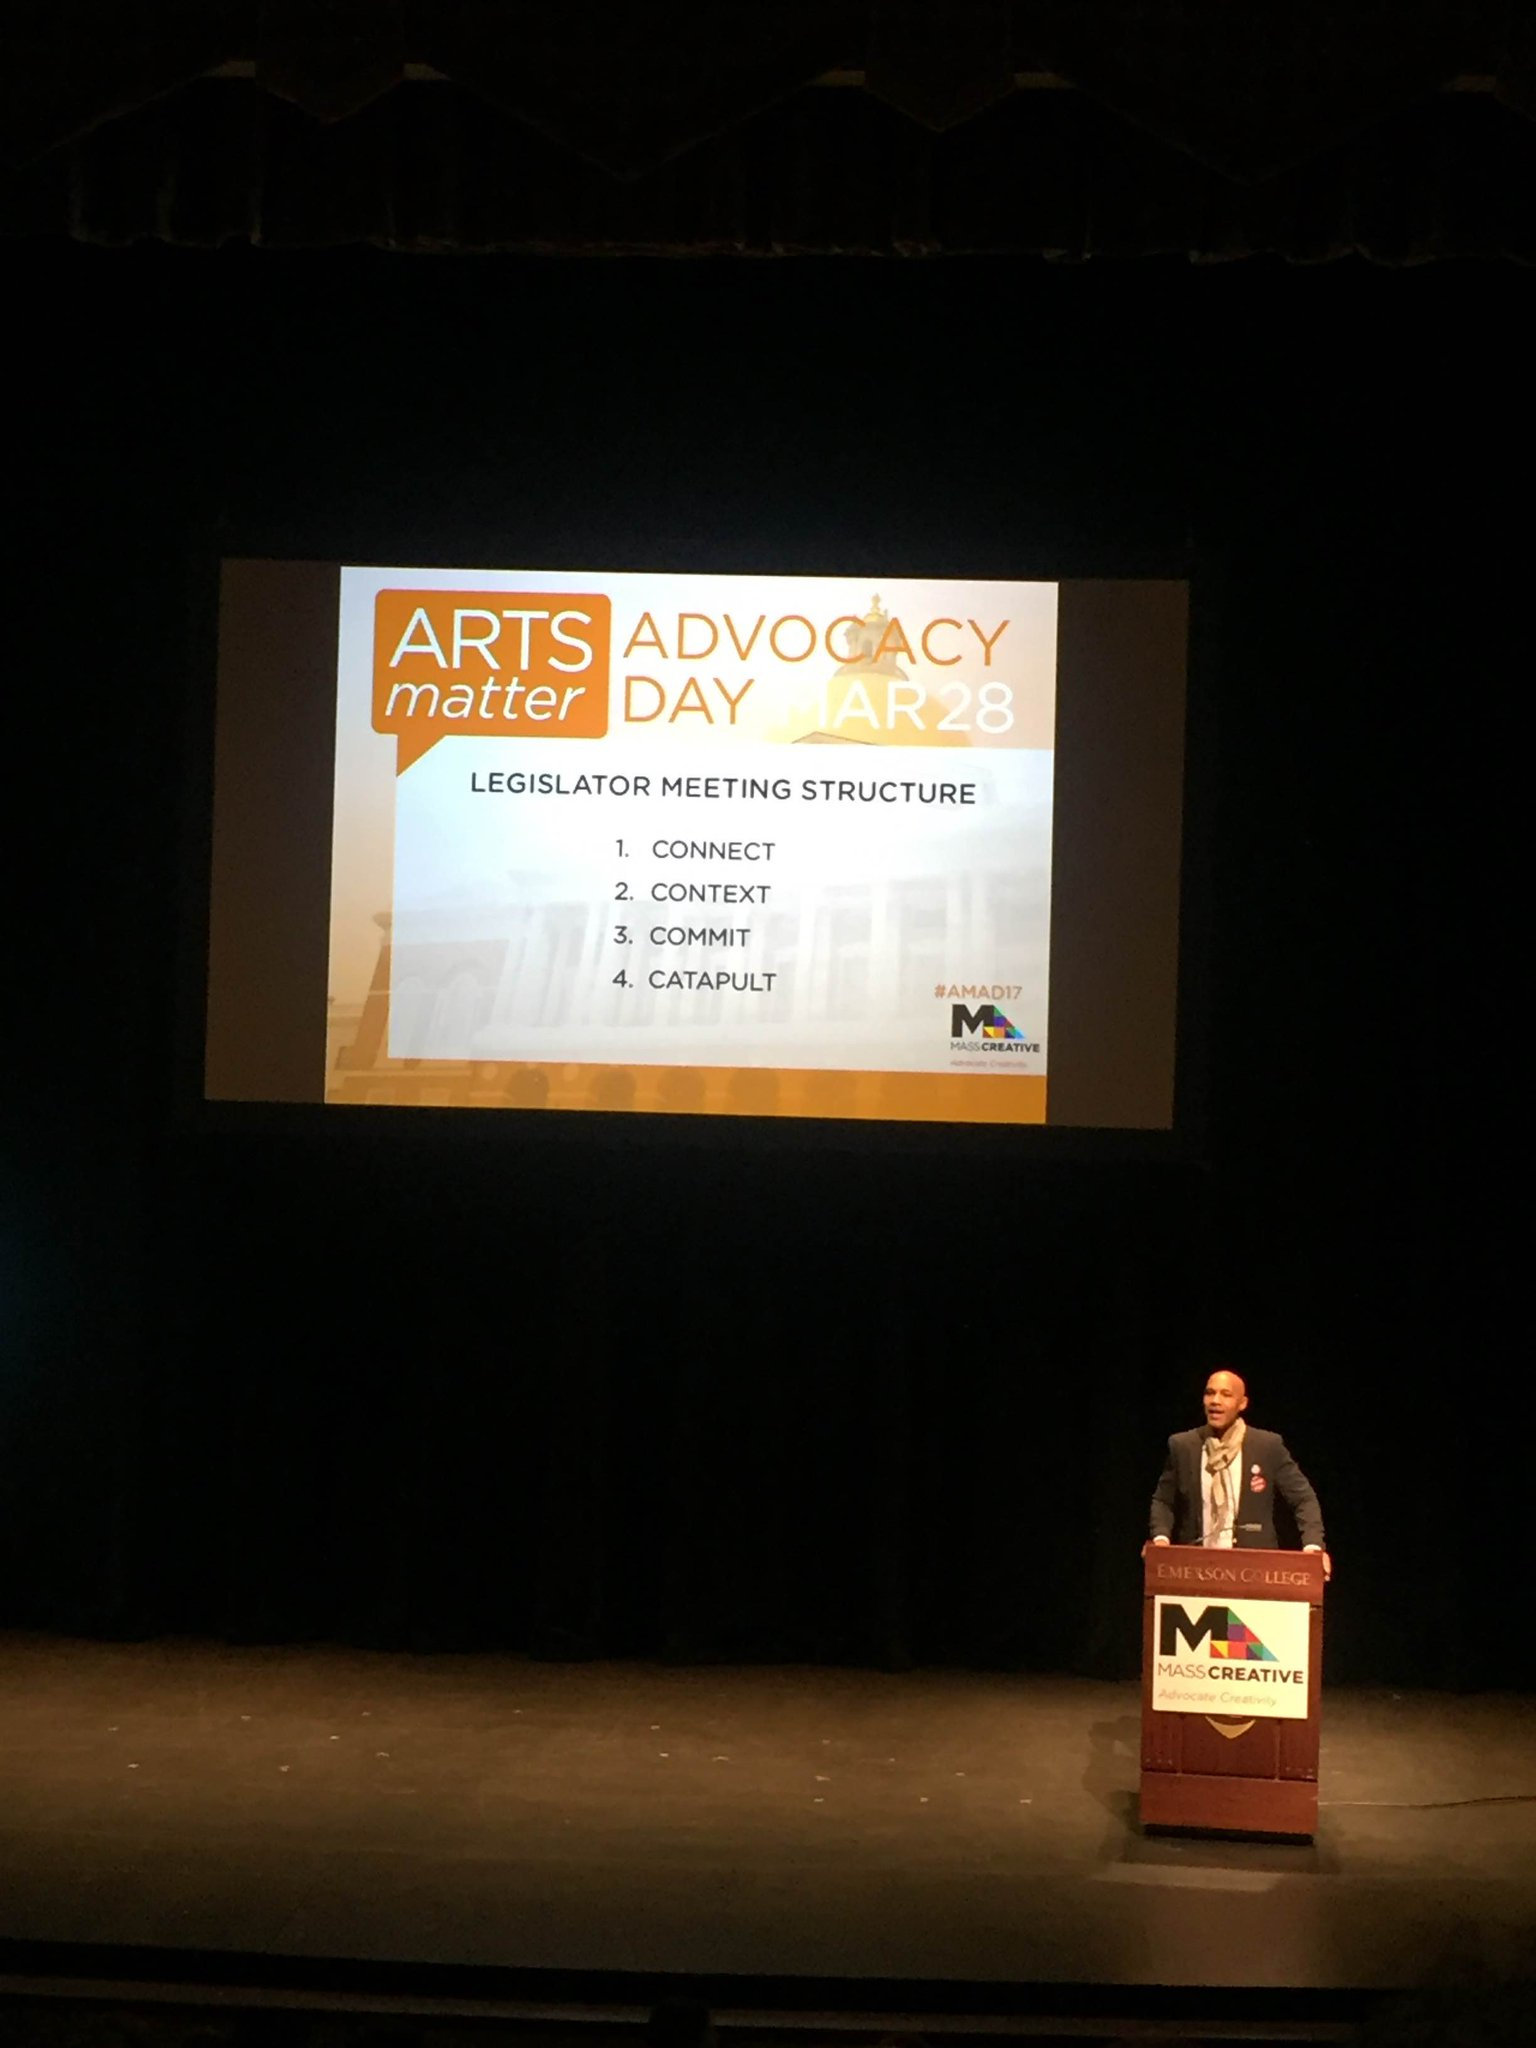 """Every American has a right to creativity, without question."" Wise words from David Howse of @ArtsEmerson at #AMAD17 with @MASSCreative. https://t.co/wcz4zfyNLm"